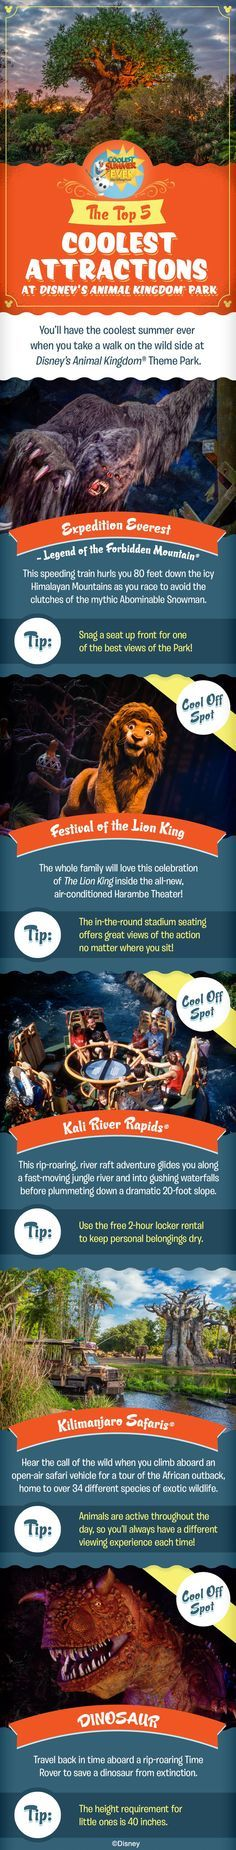 Check out the Top 5 Coolest Attractions at Disney's Animal Kingdom and get ready to have the Coolest Summer Ever as you plan your family vacation at Walt Disney World!